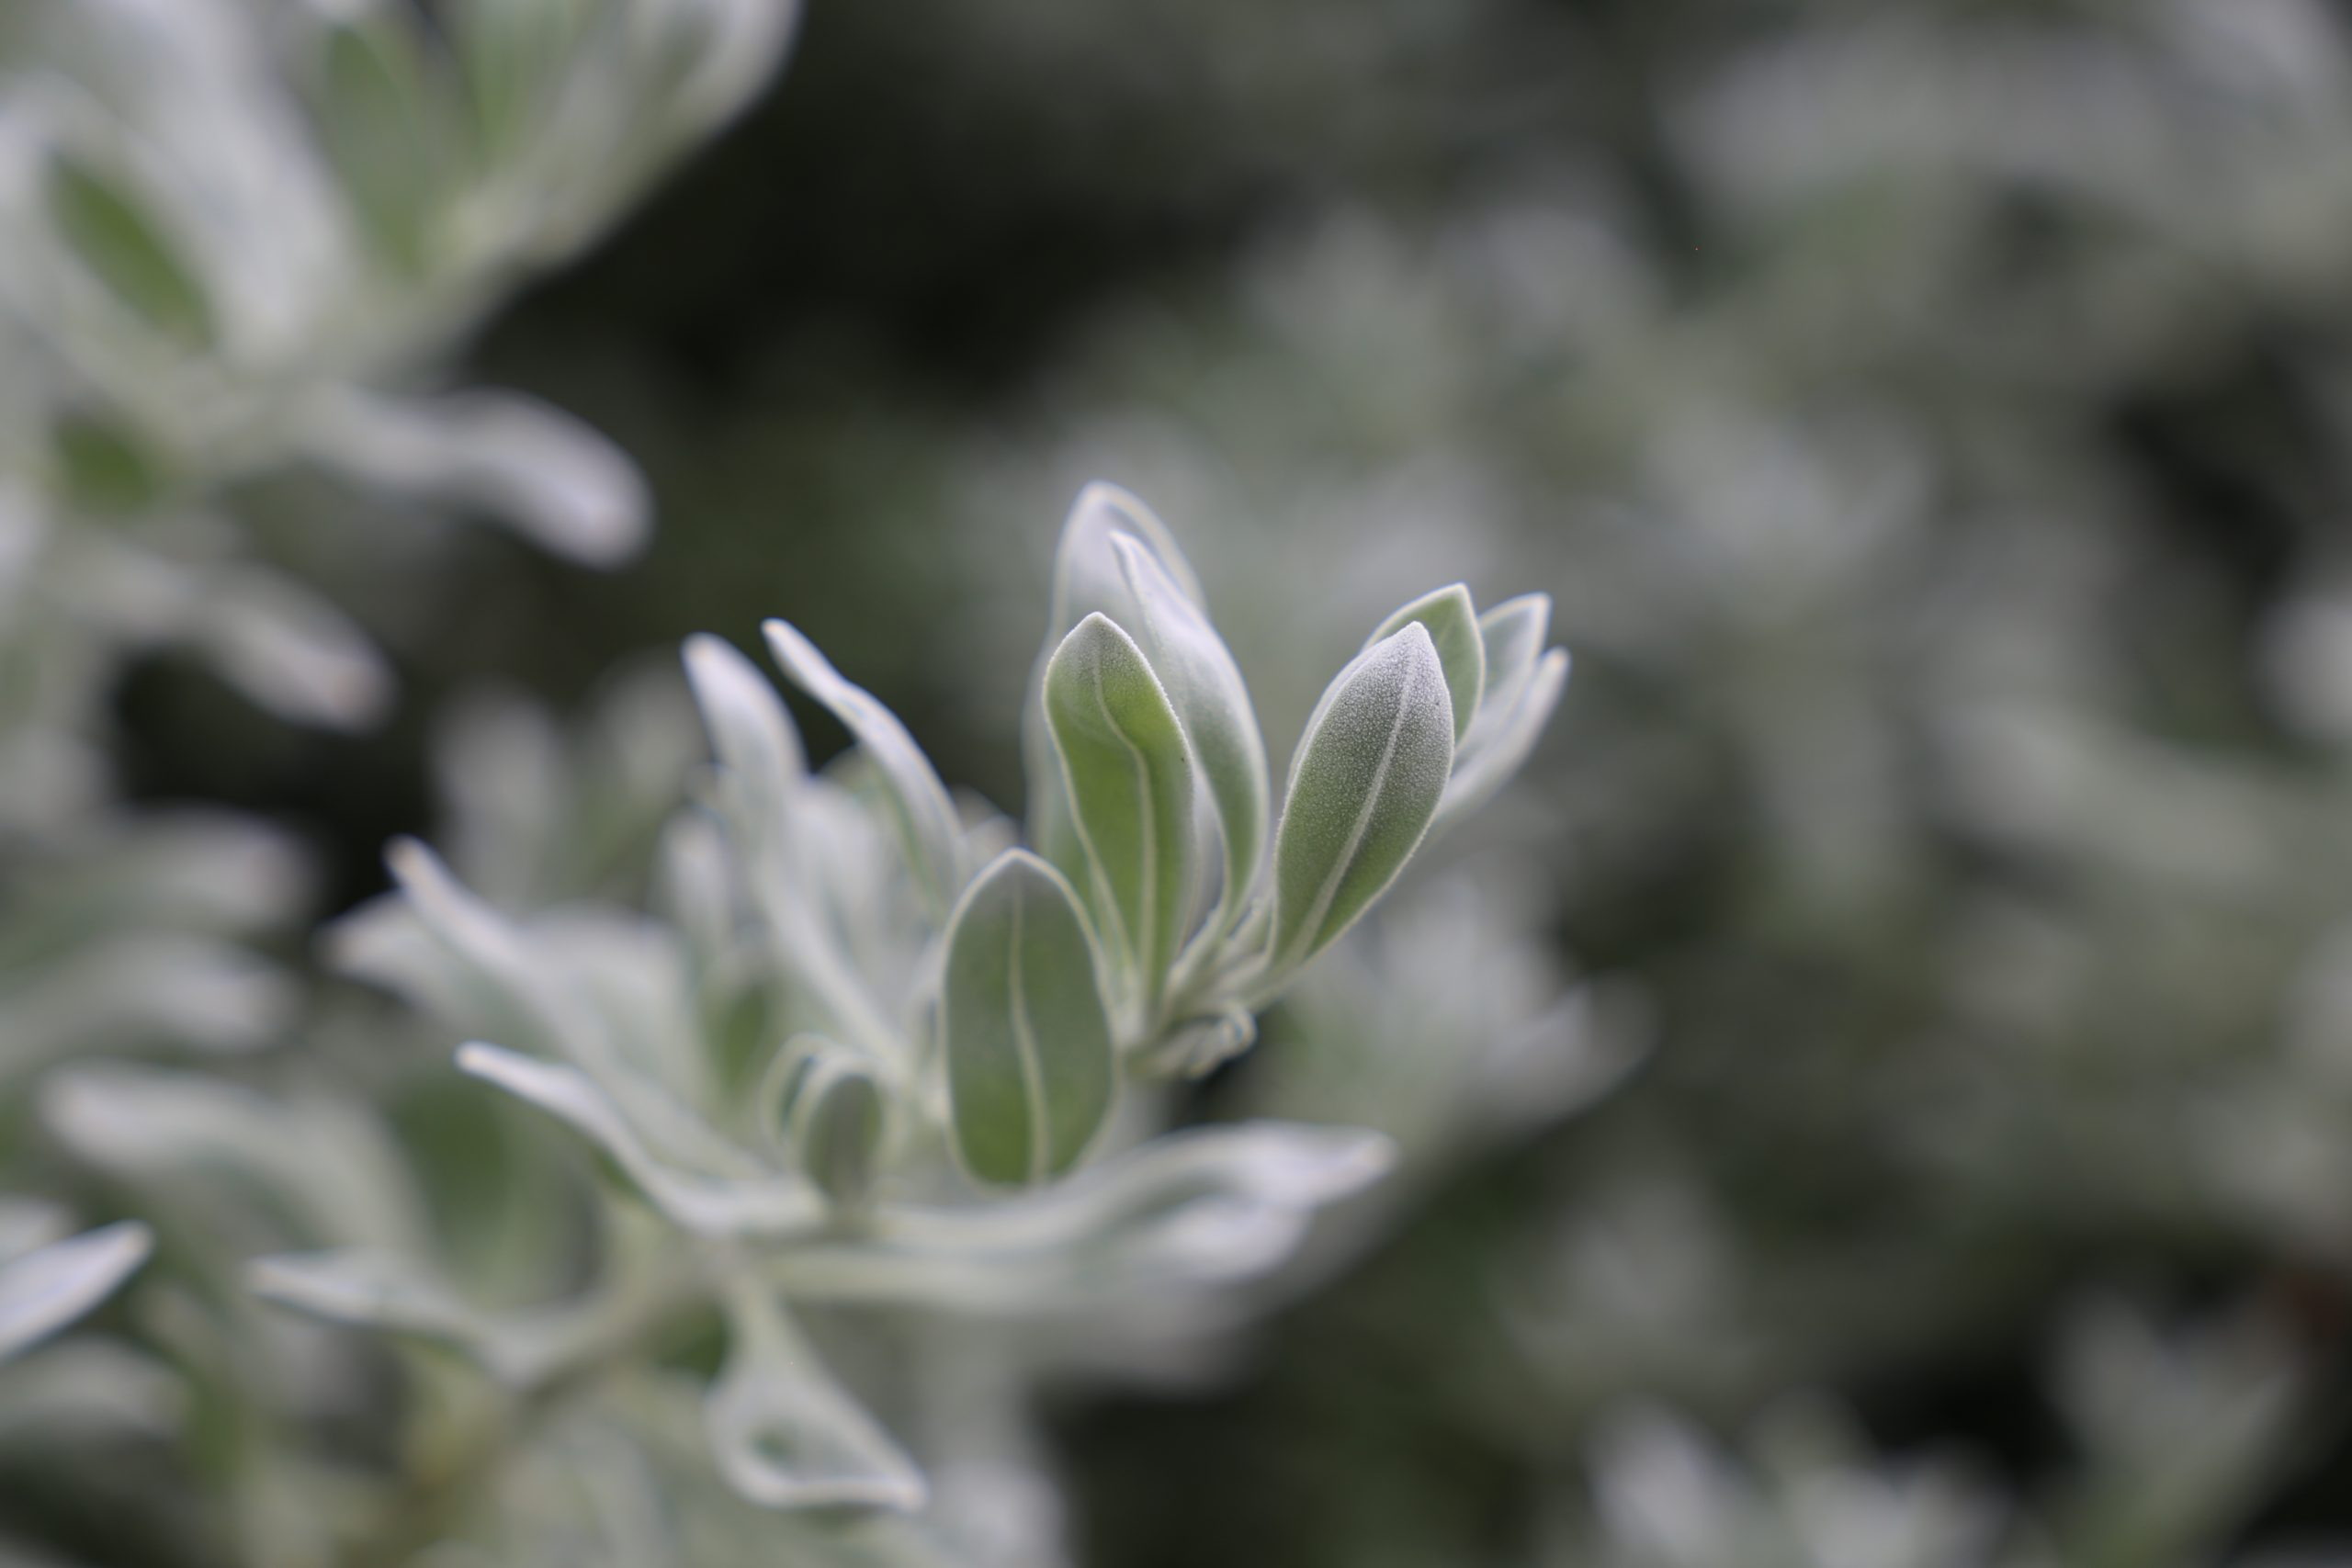 Blue Horizon Eremophila Close Up Of Rough Leaves For Capturing Pollution